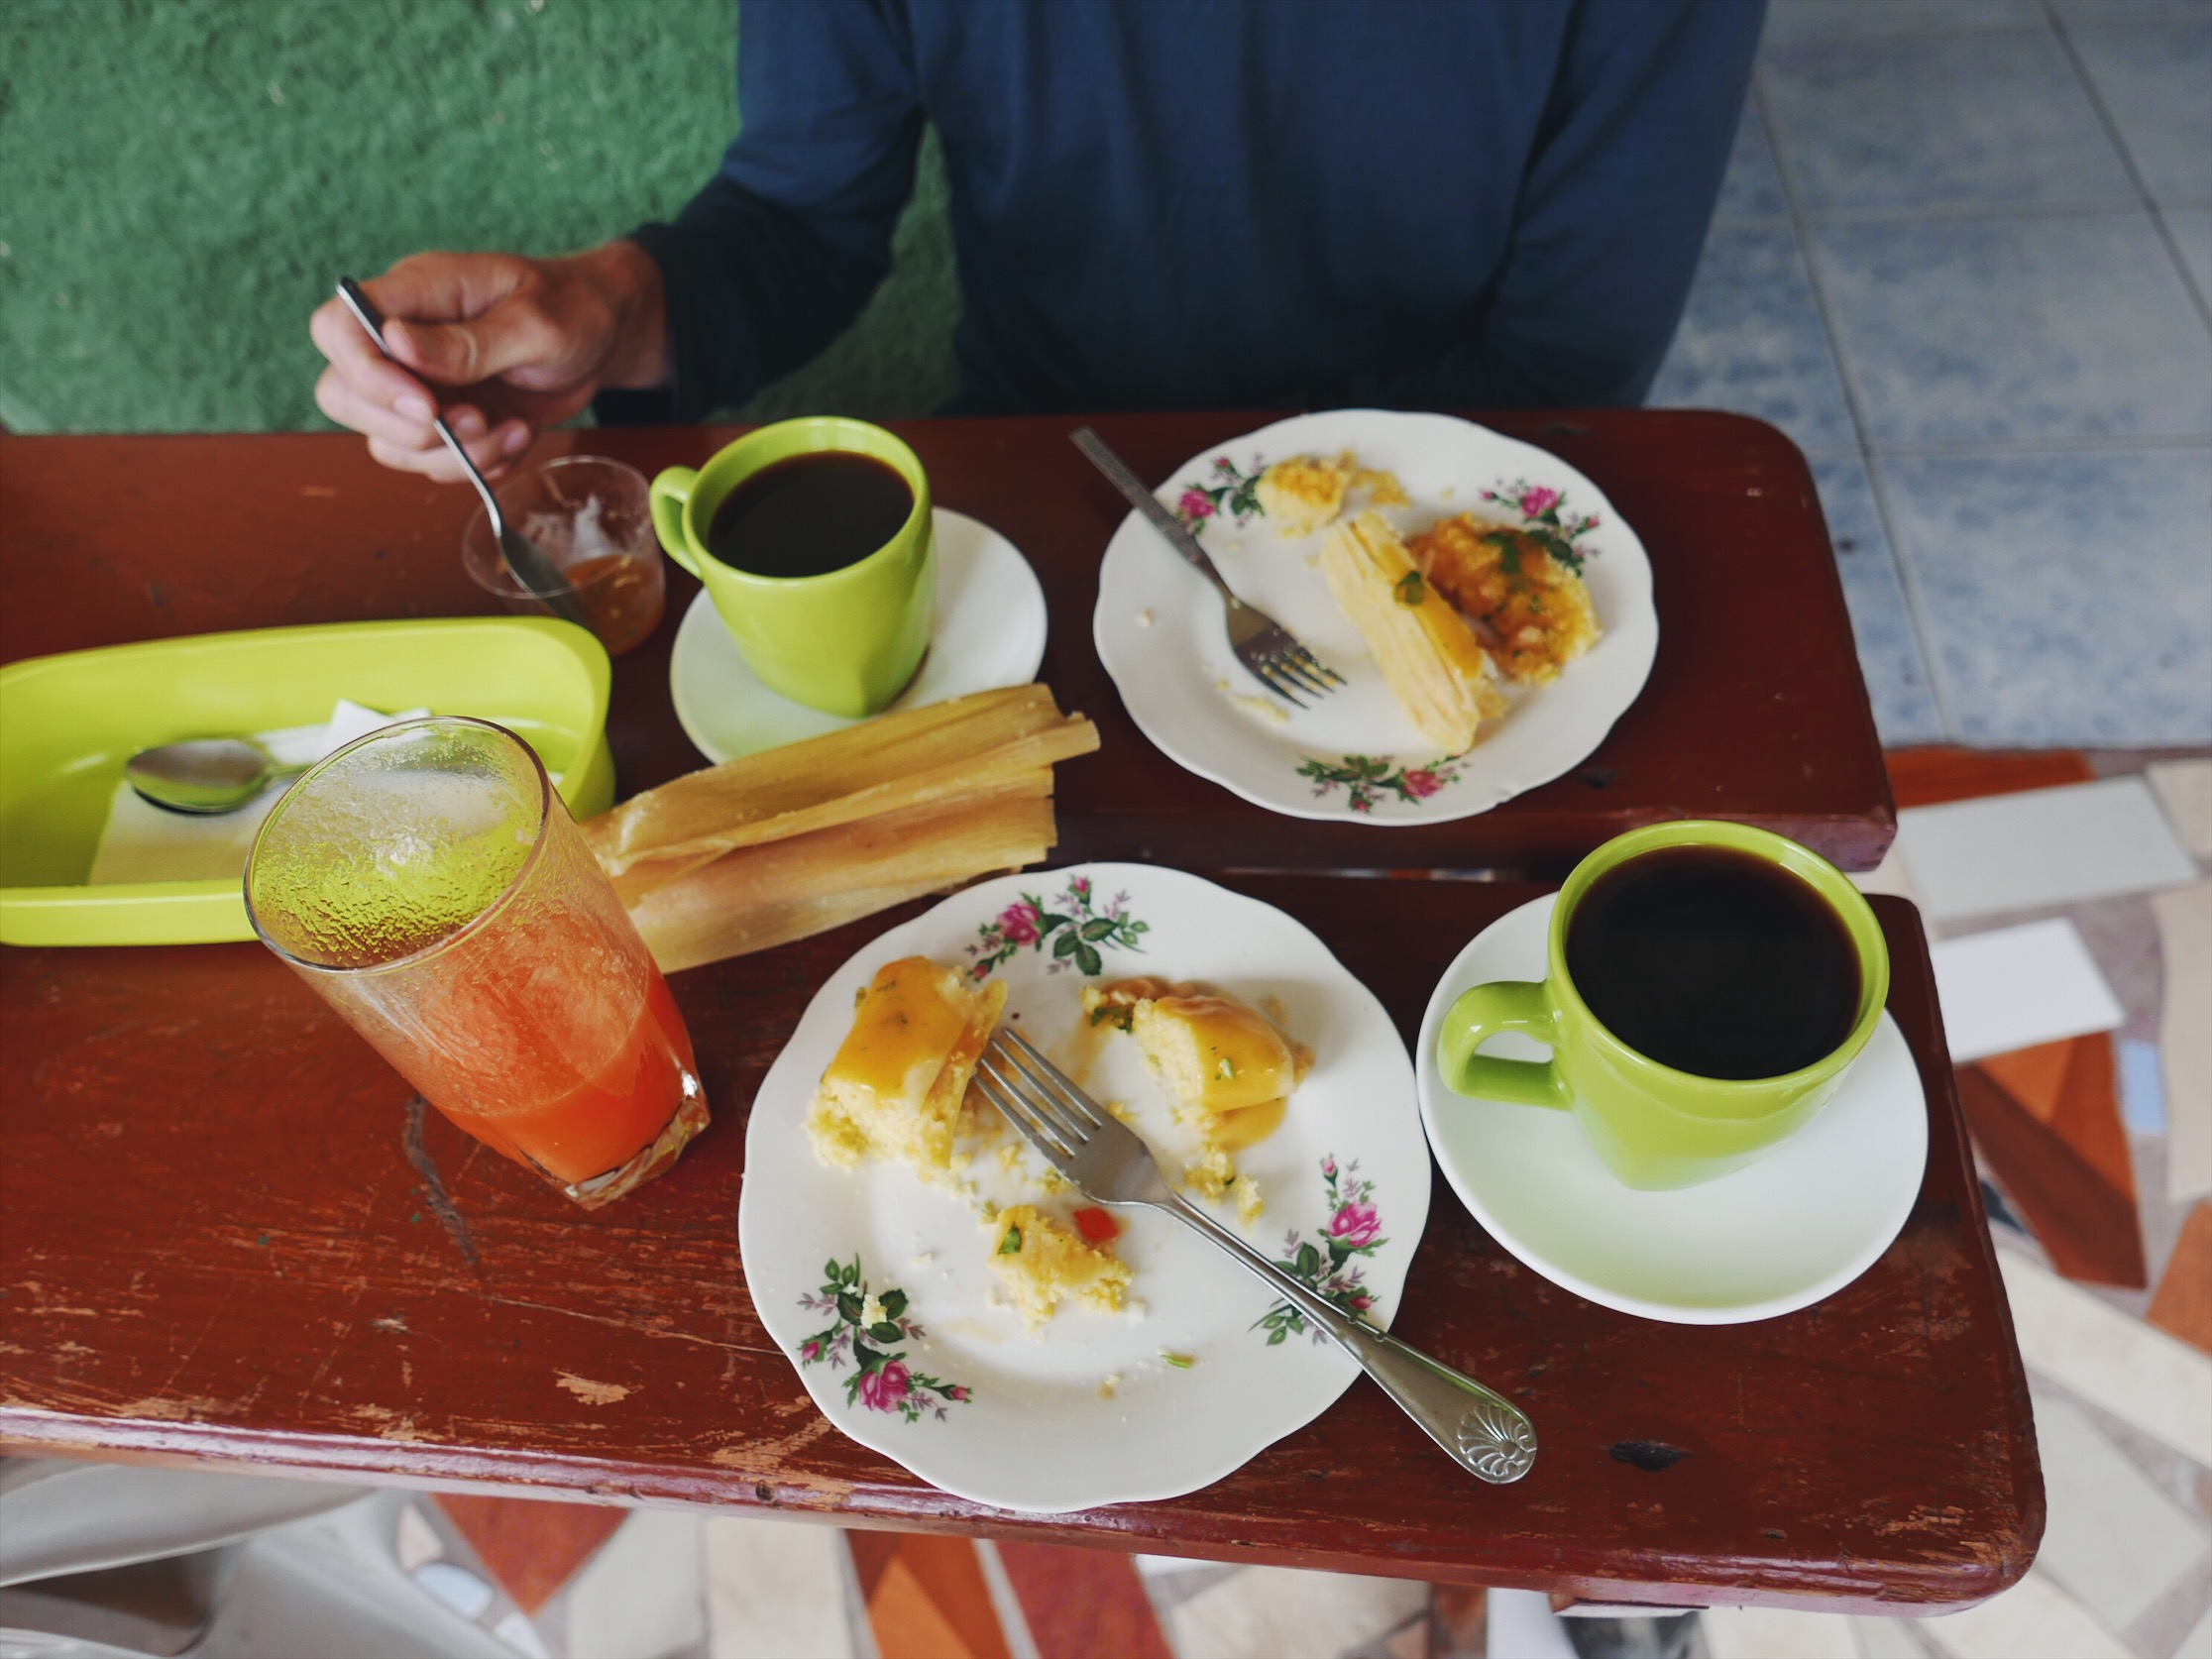 Mid-morning snack. Humitas are a tamale-like dream made from fresh corn and lard, typically served with a bowl of fresh ají—homemade hot sauce.